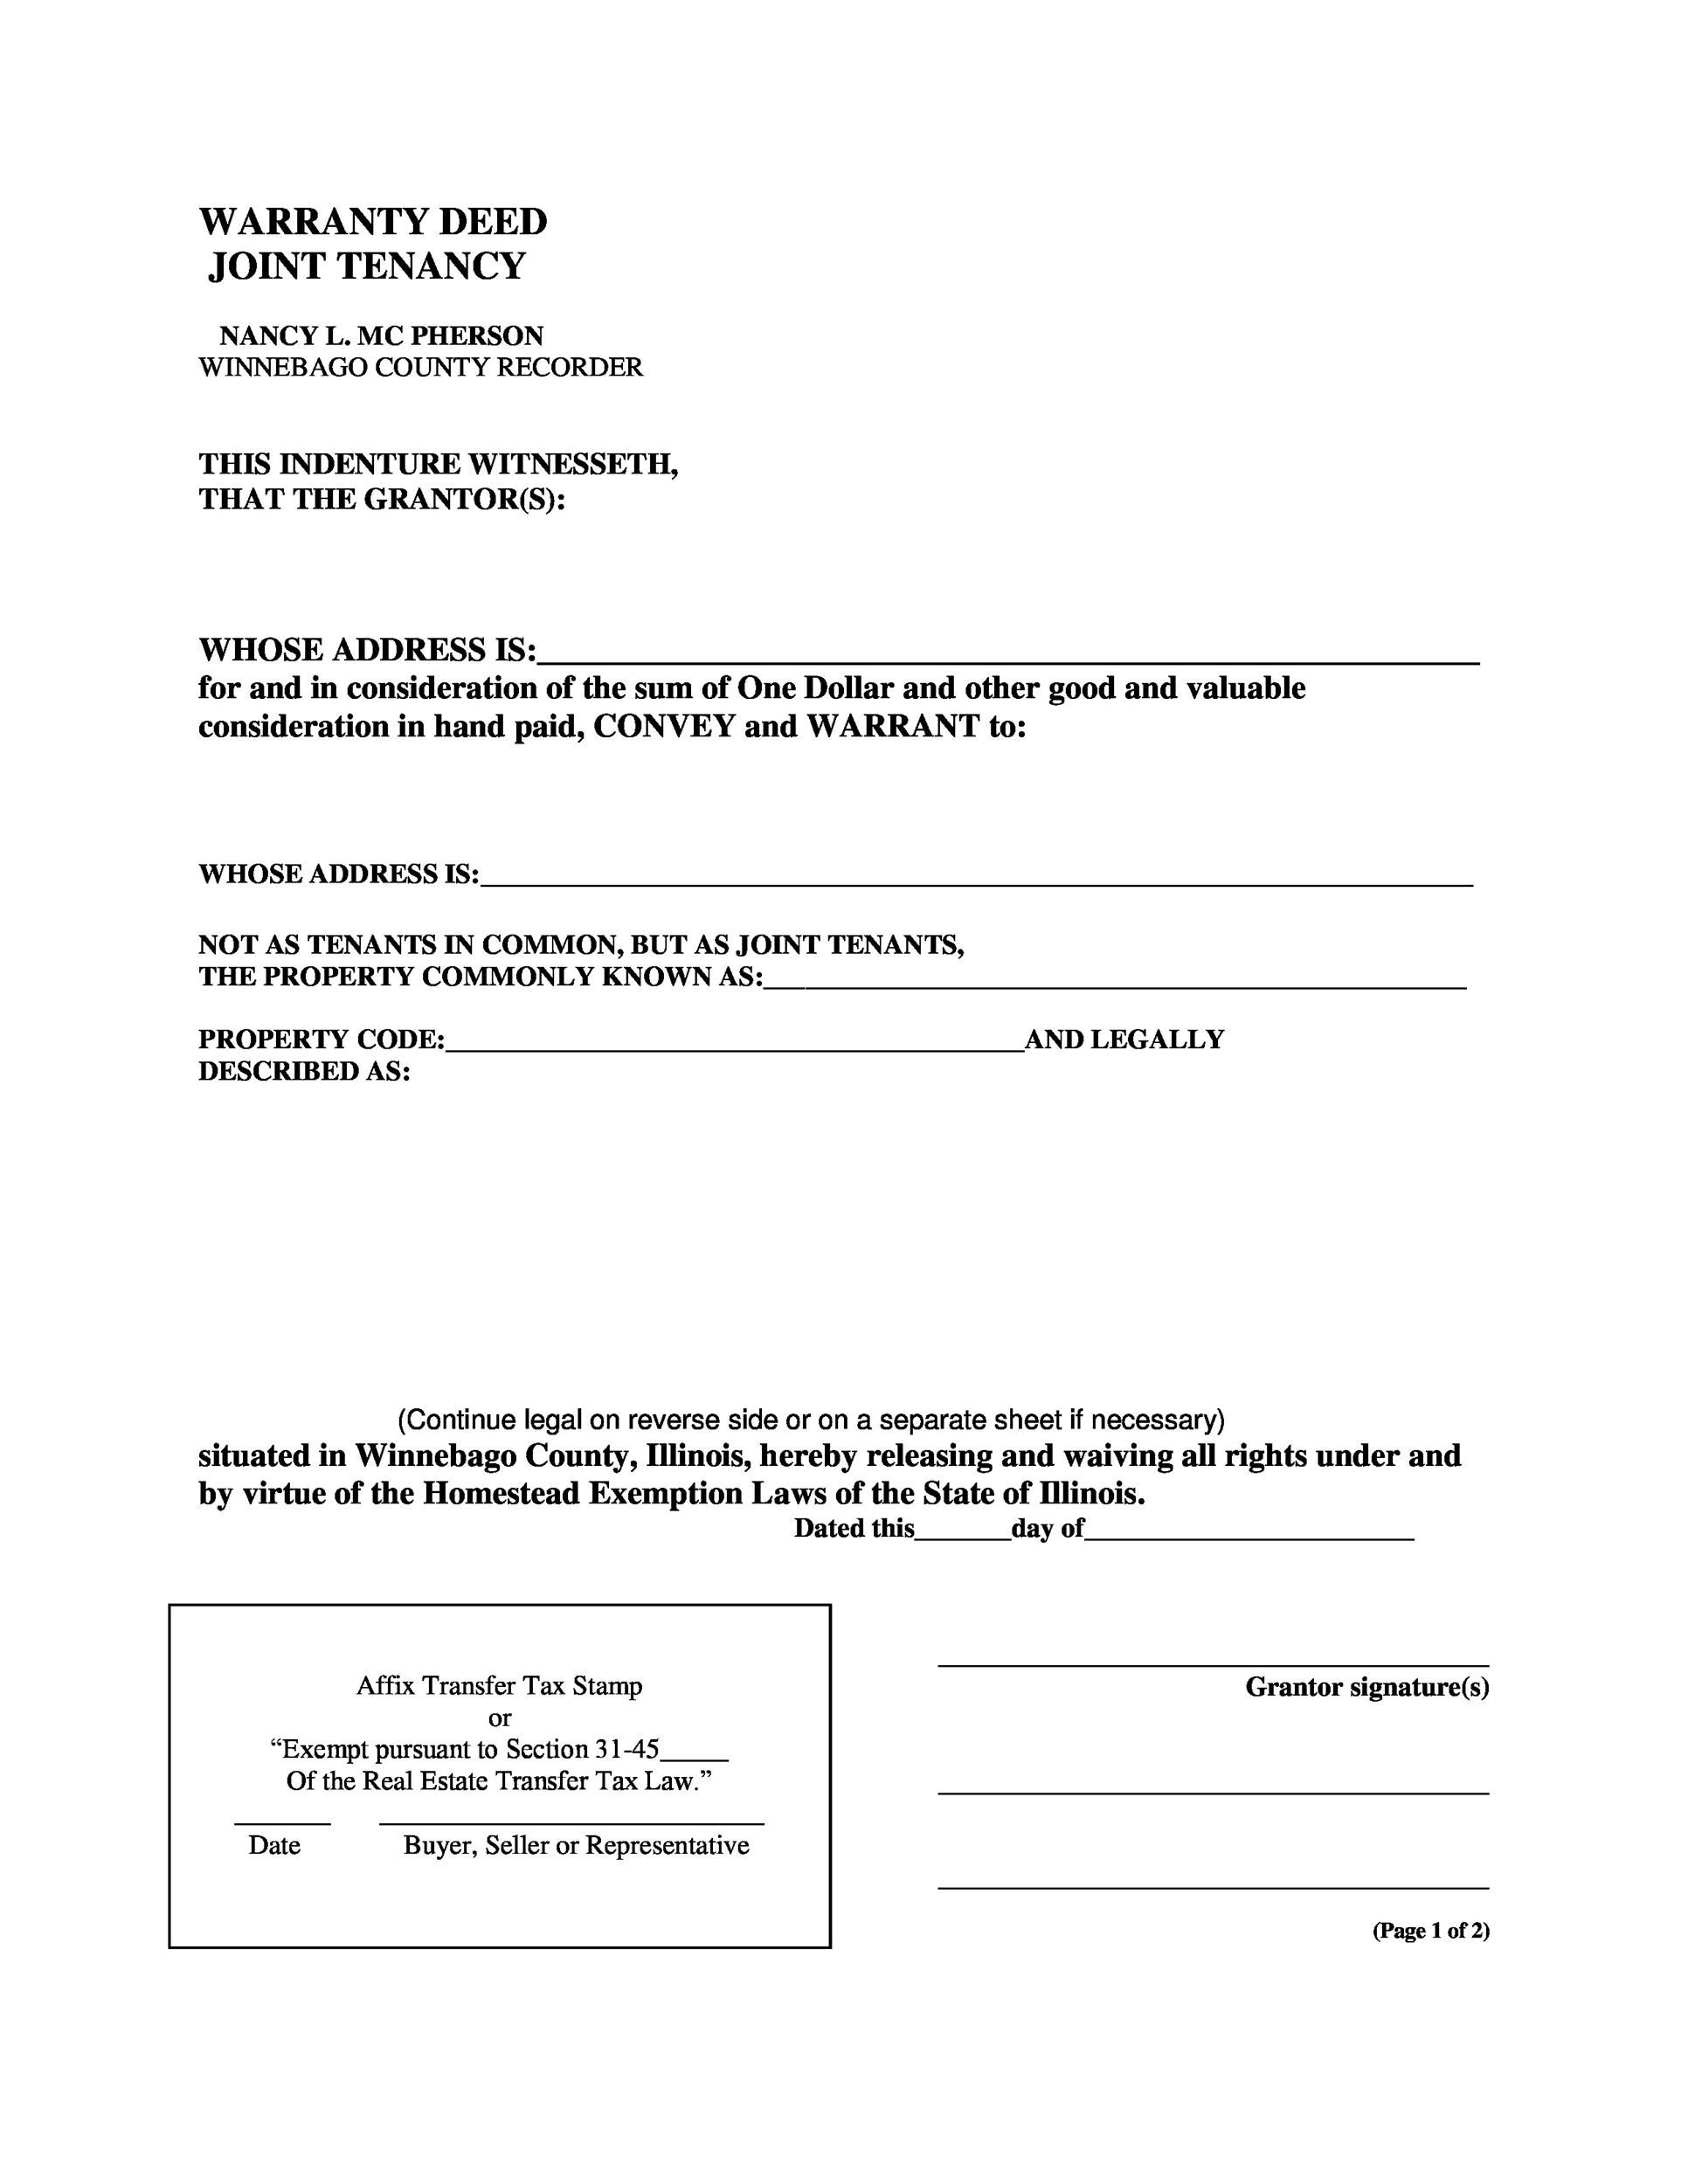 Free Warranty deed template 28